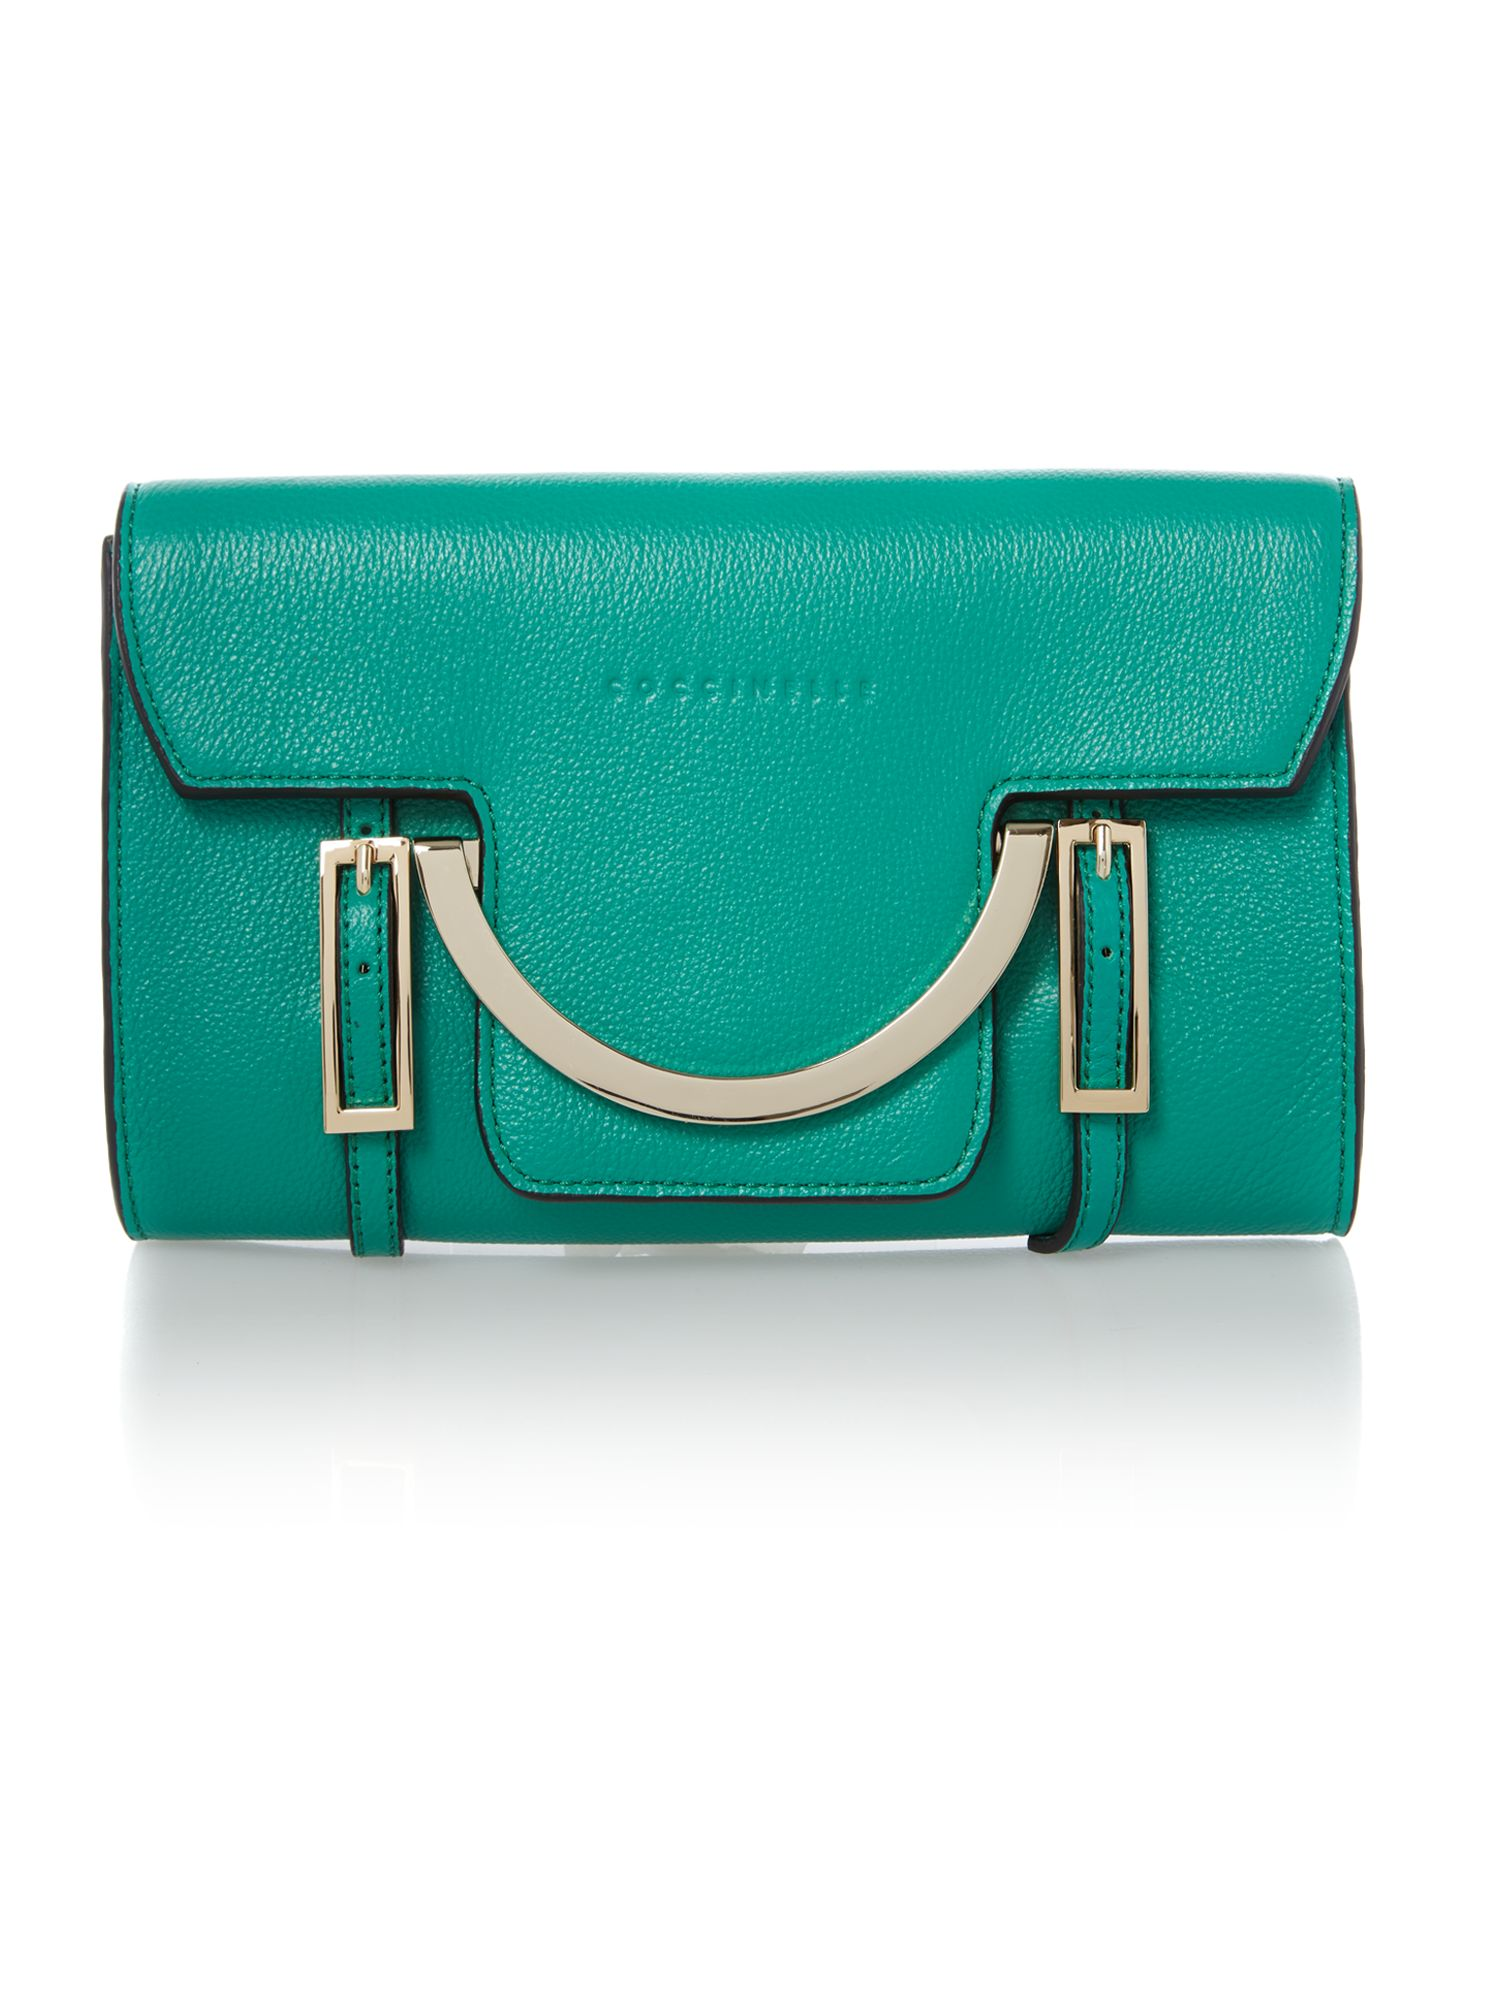 Celeste green small cross body bag